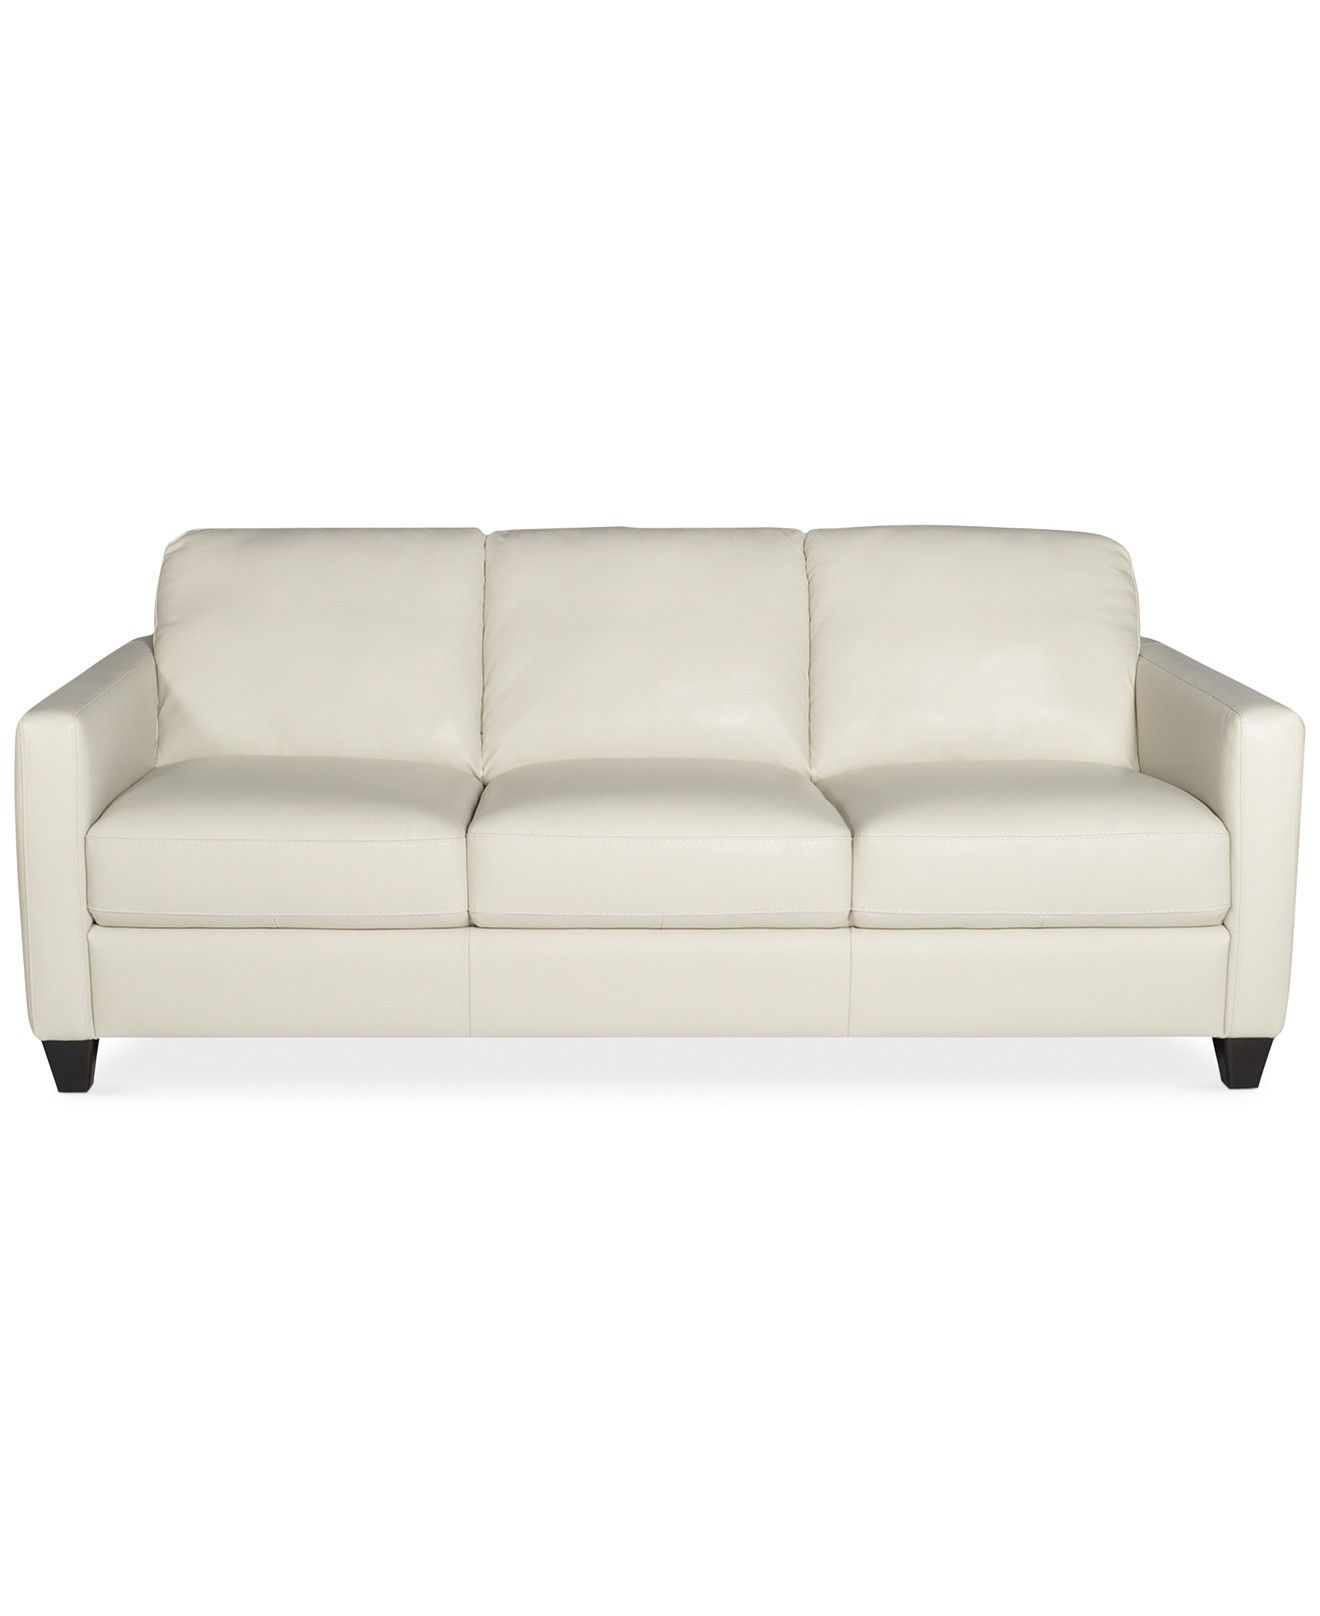 Condo Couches Emilia Leather Sofa Couches And Sofas Furniture Macy 39s